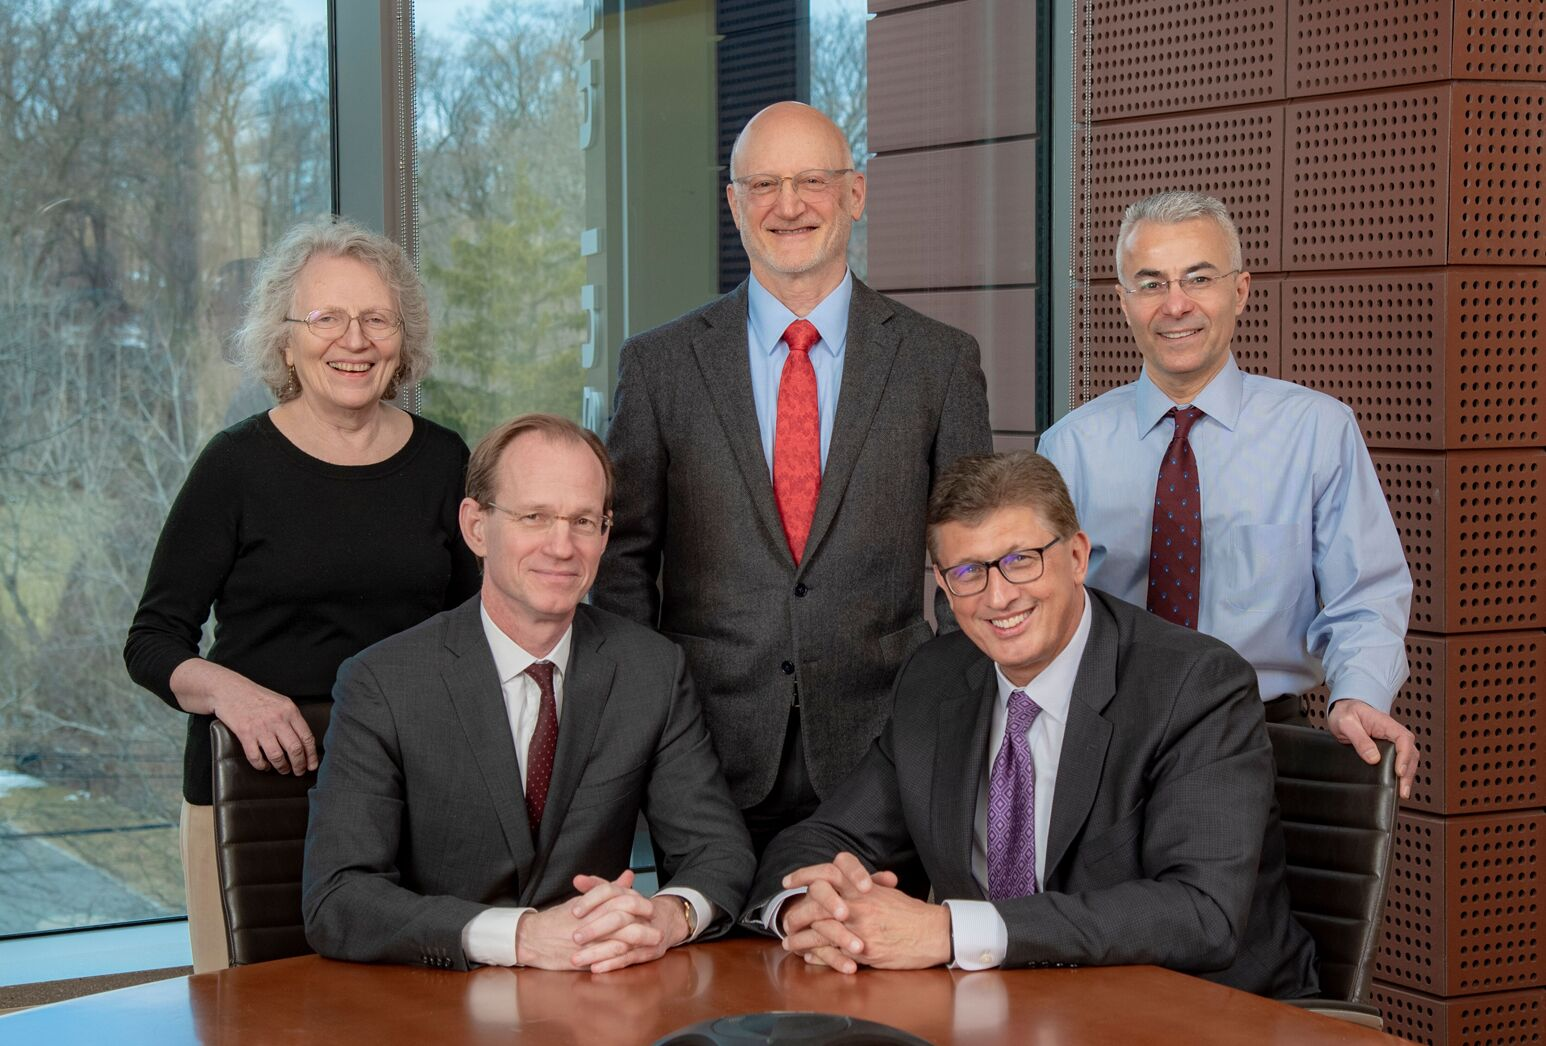 Our five institutes are led by Betty Diamond, MD; Tom McGinn, MD; John Kane, MD; Richard Barakat, MD; and Yousef Al Abed, PhD.